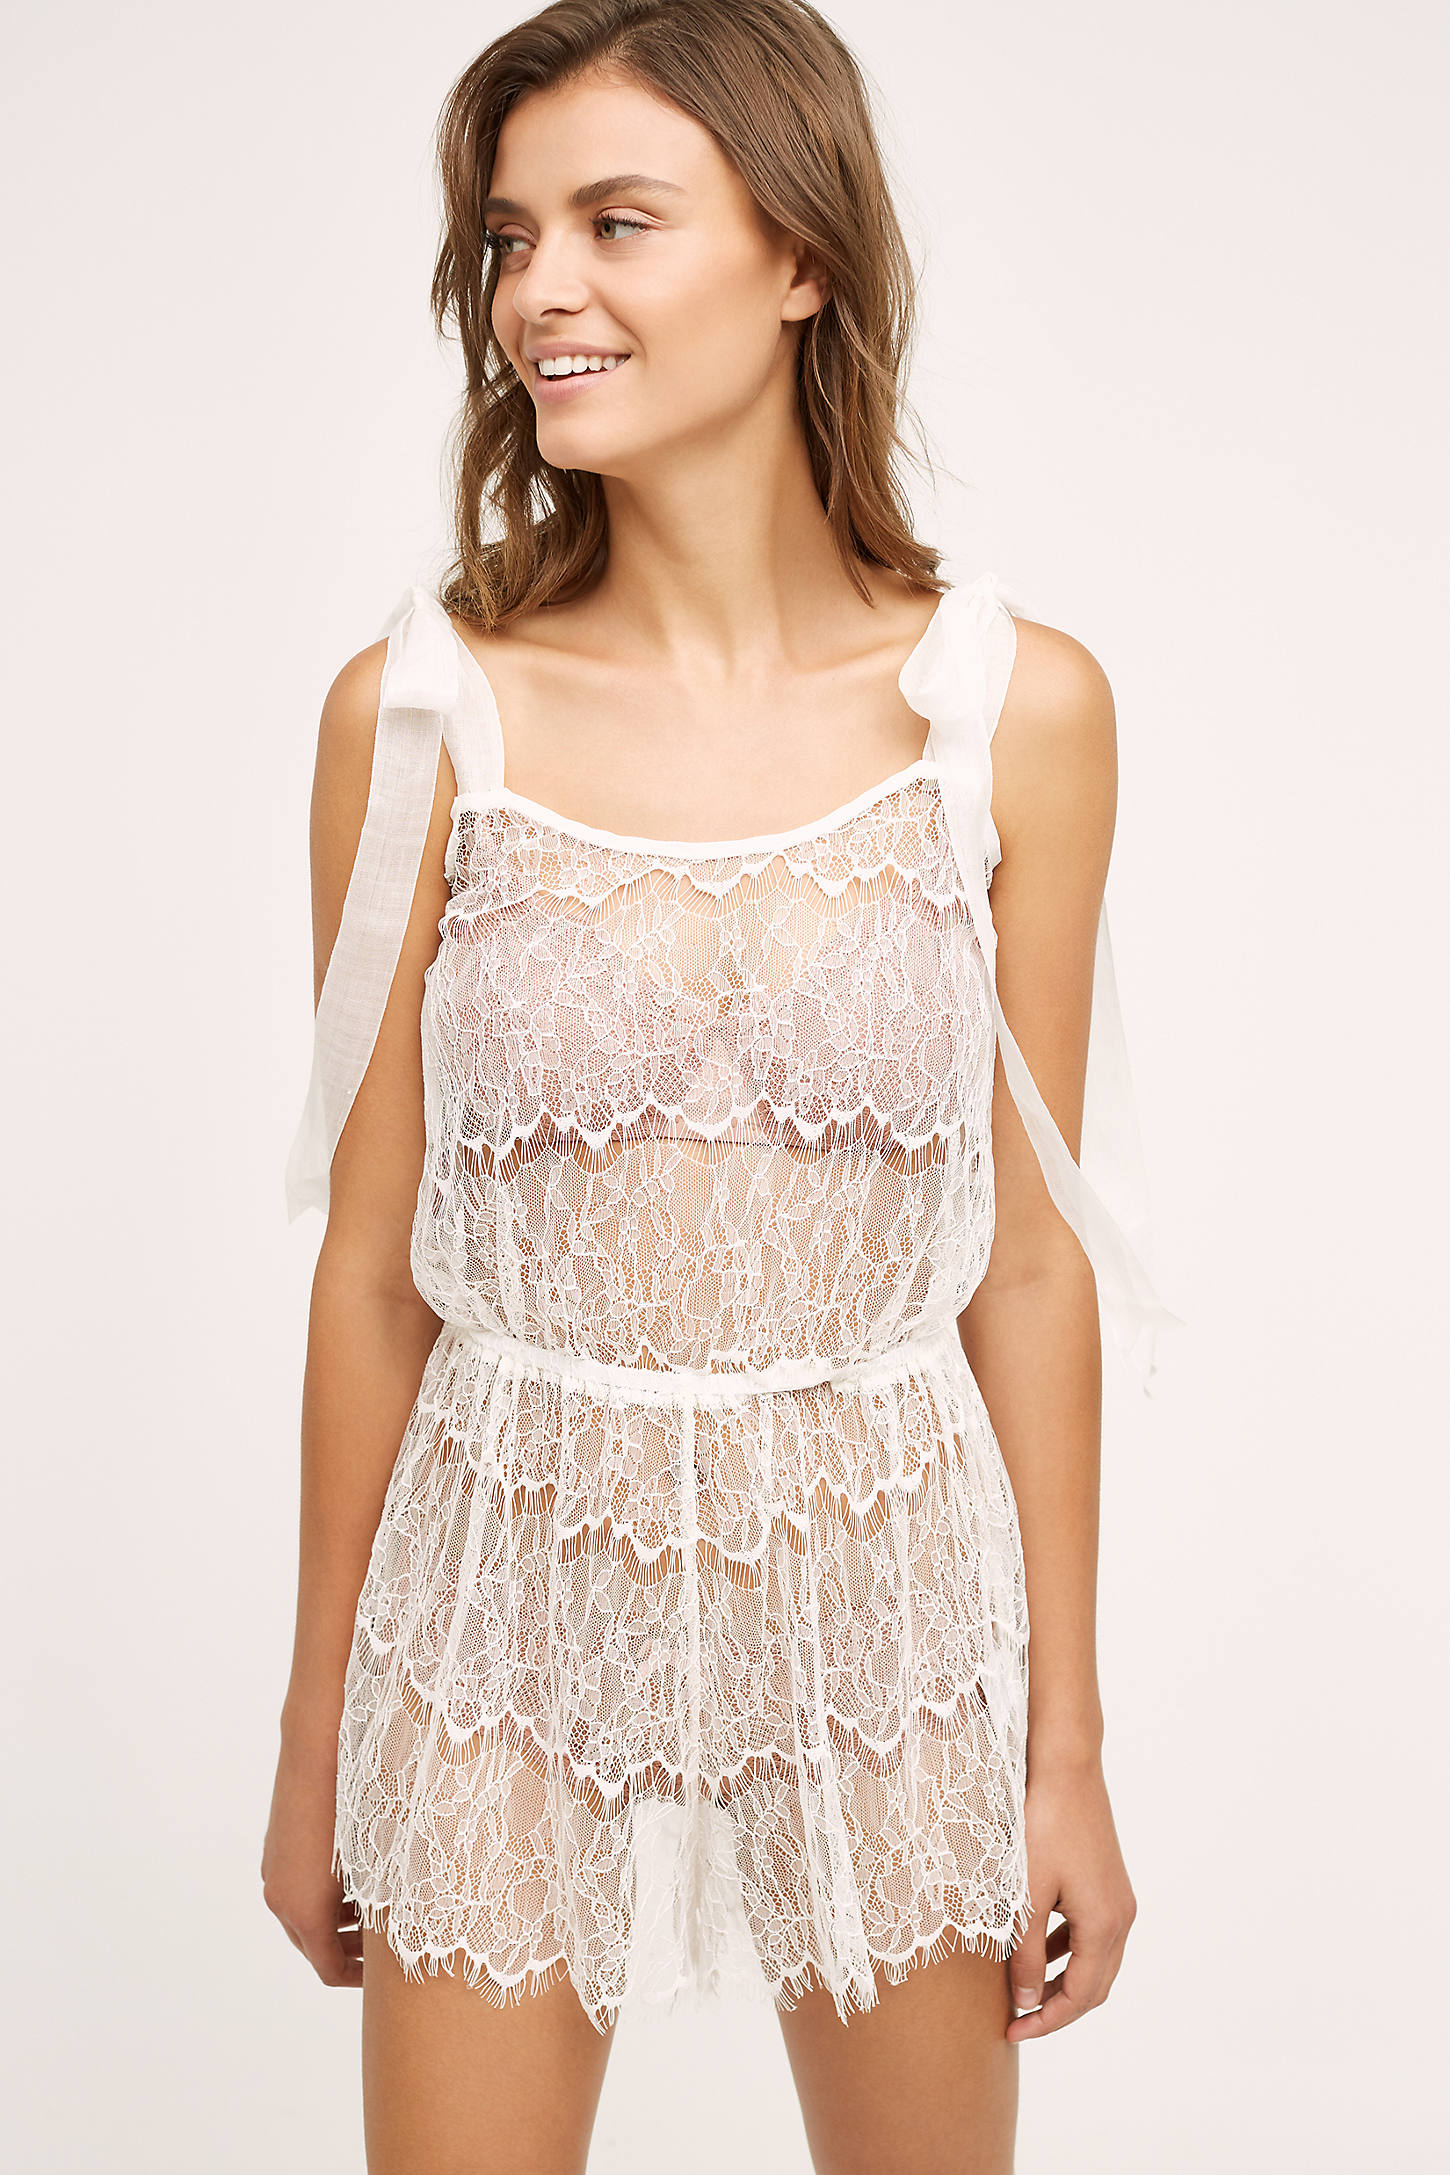 Twig & Honey Ruffled Lace Romper